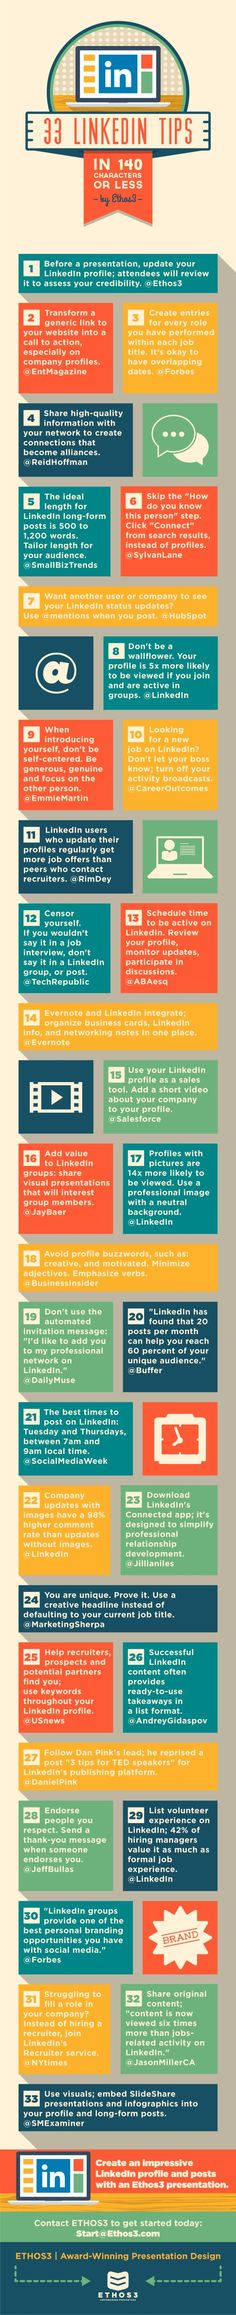 nice 33 LinkedIn Tips In 140 Characters Or Less – #infographic #socialmedia